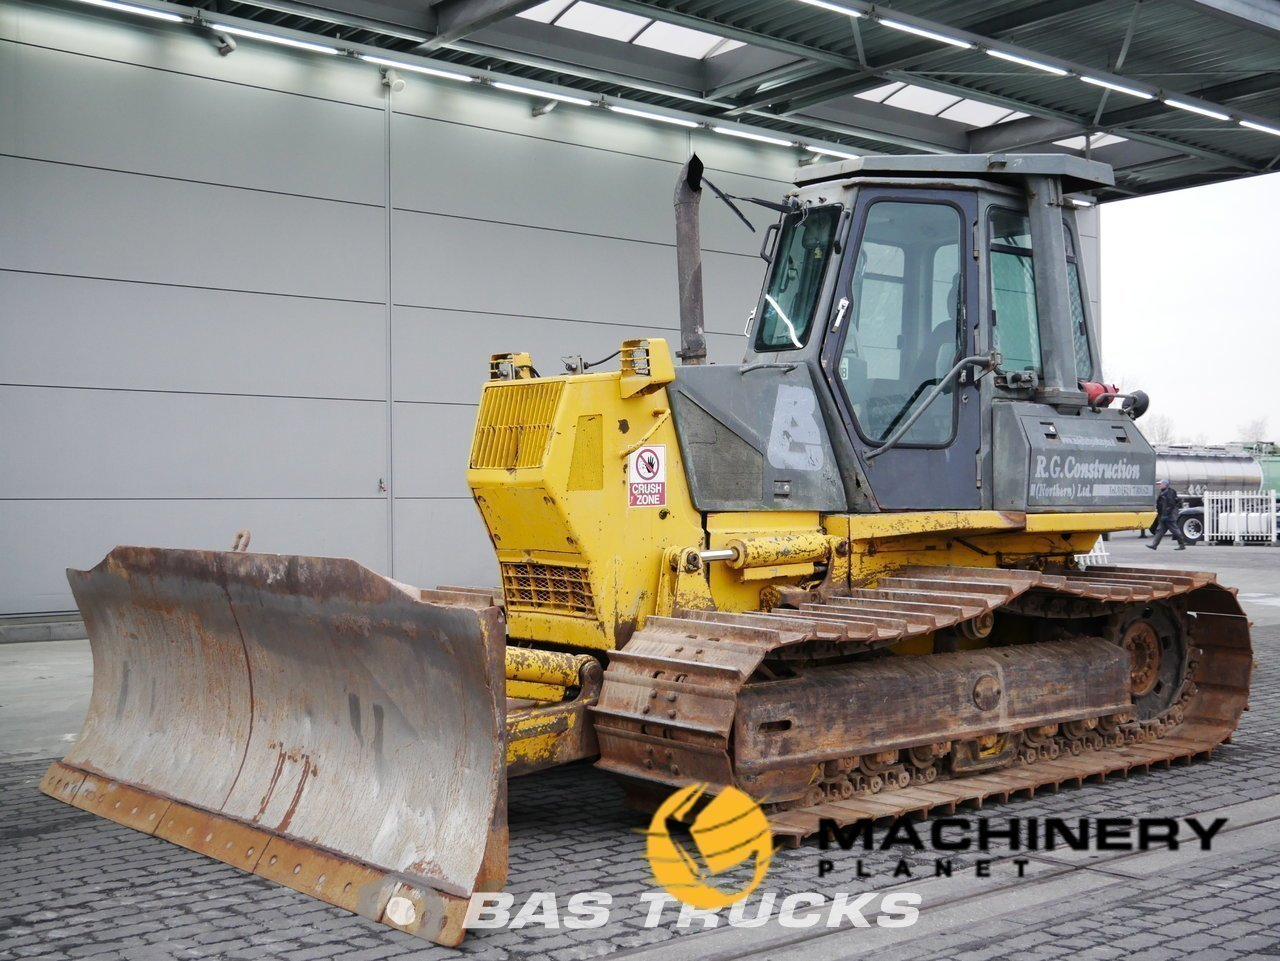 Used-Construction-equipment-Komatsu-D41-P-6-Track-1997_143284_1-1554112991086_5ca1e1df14ef1-1.jpg